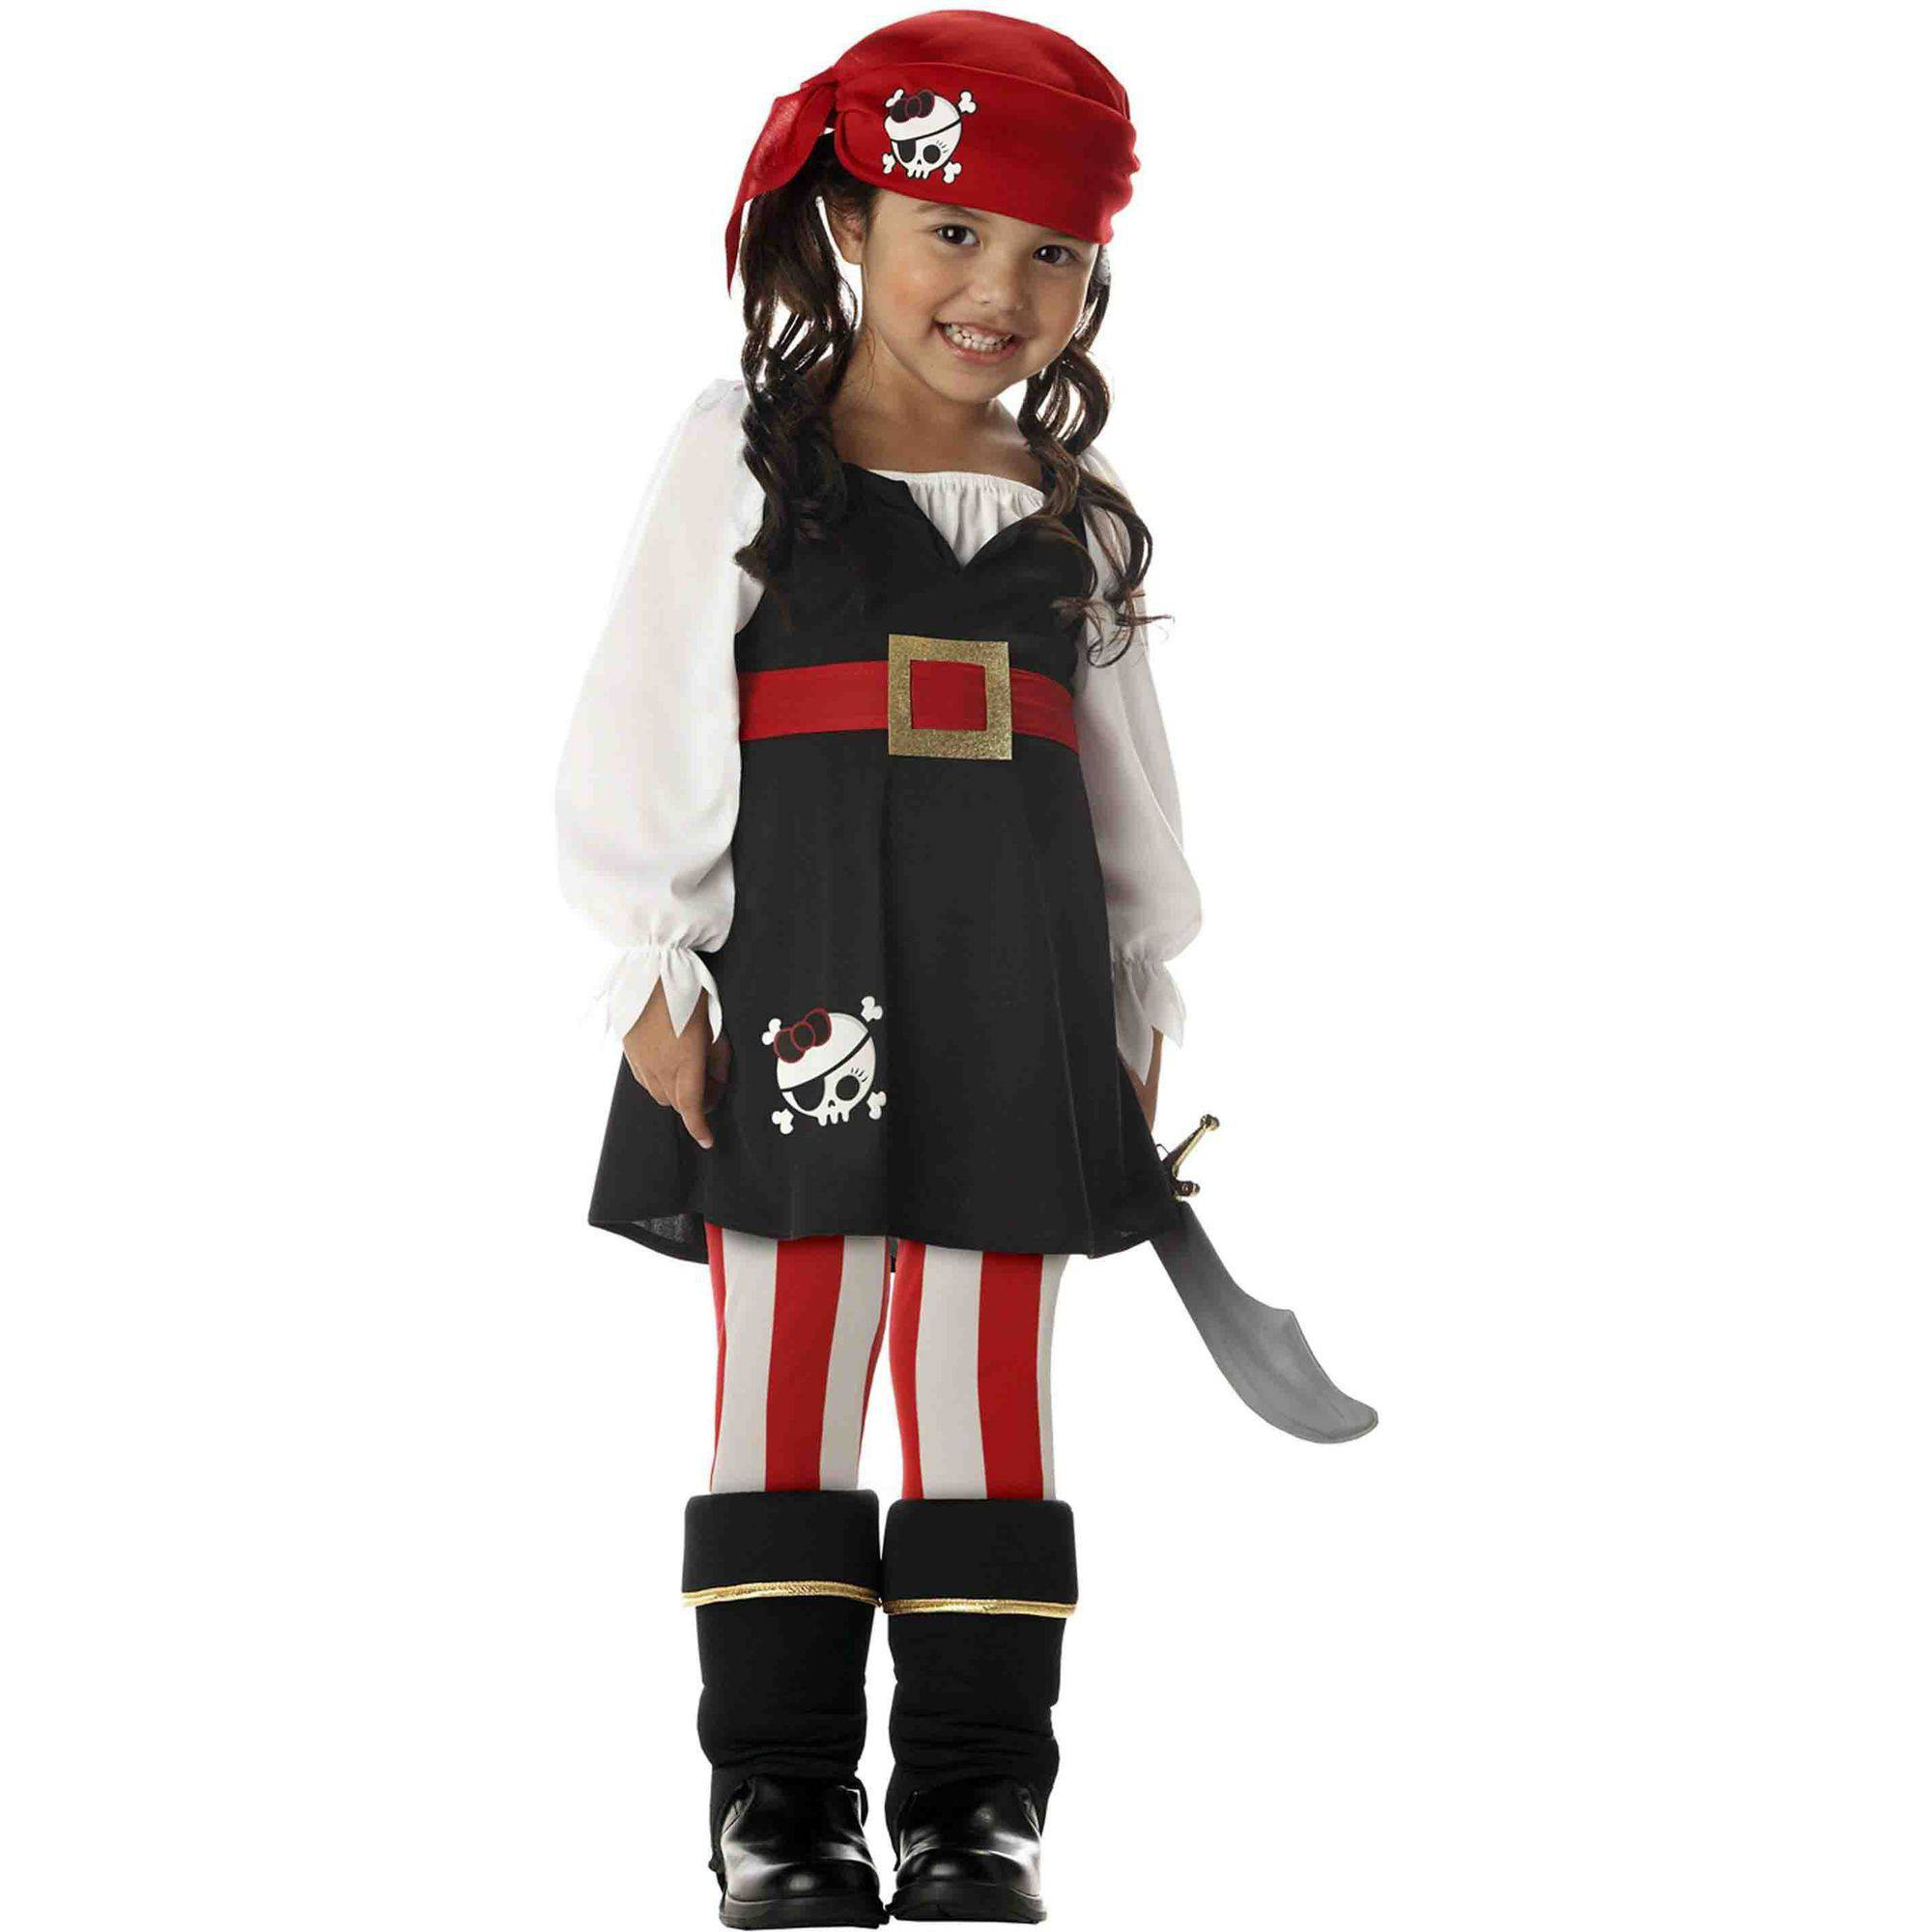 Precious Lilu0027 Pirate Toddler Halloween Costume, Size 3T 4T